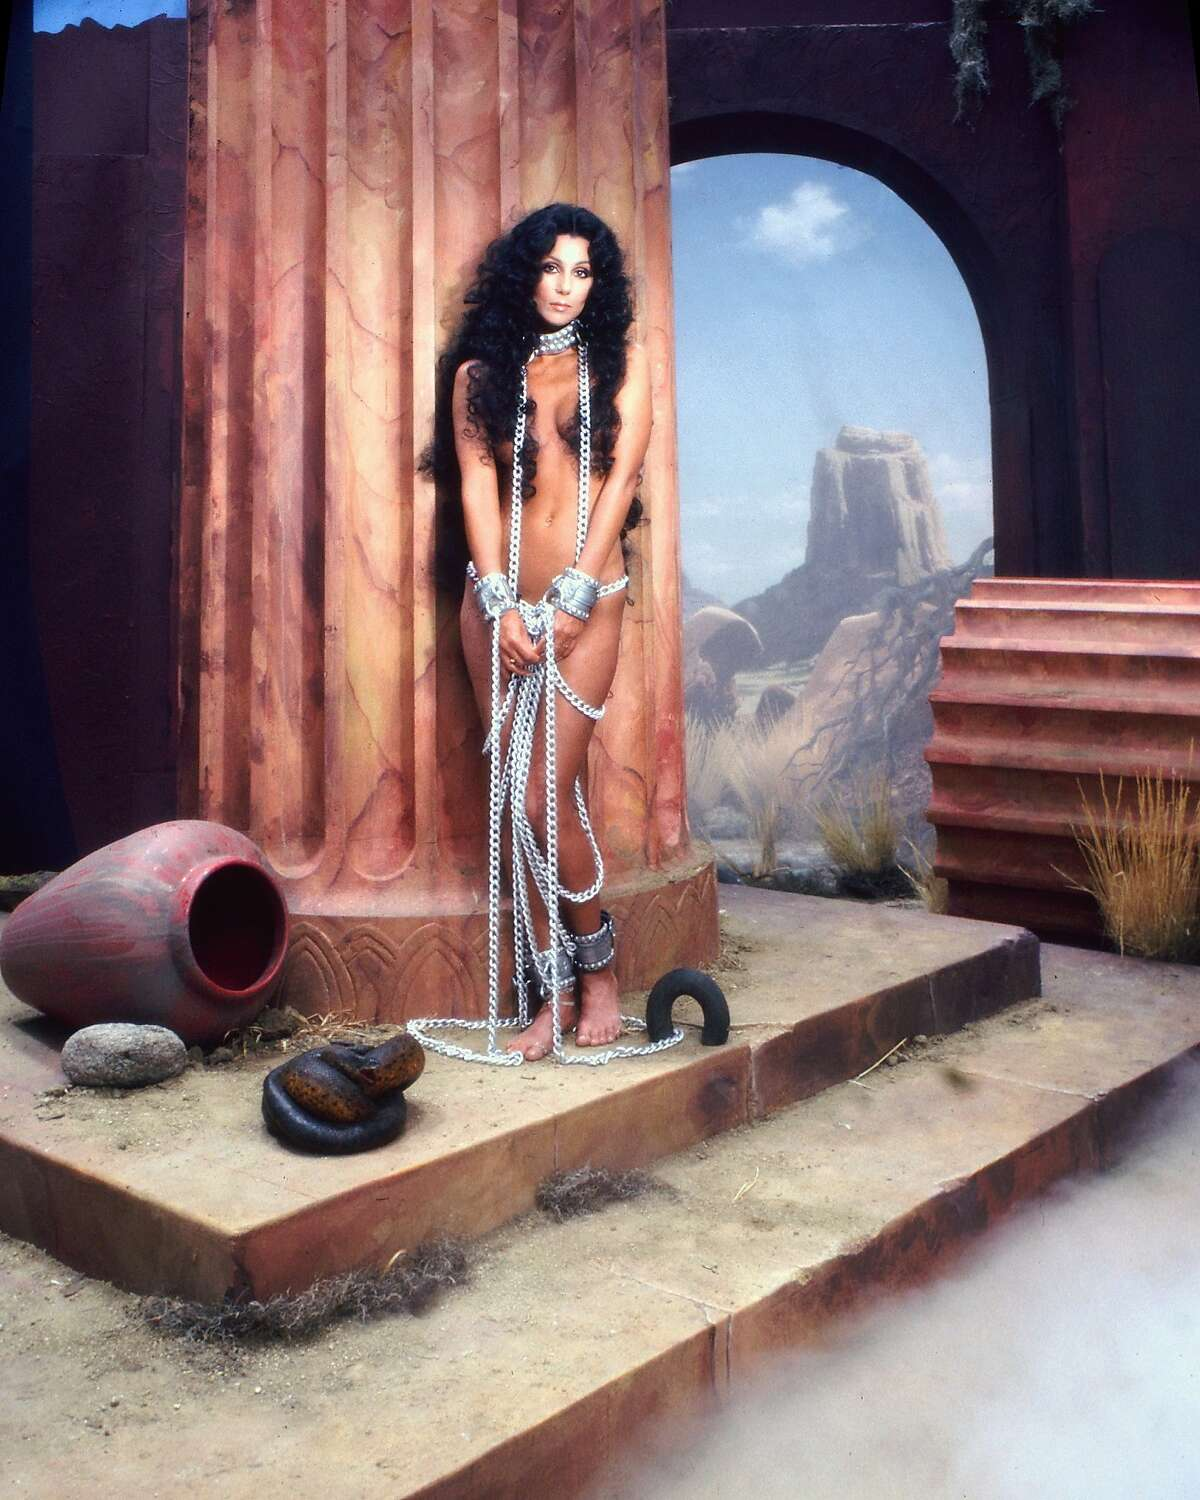 Cher poses for an album cover session for